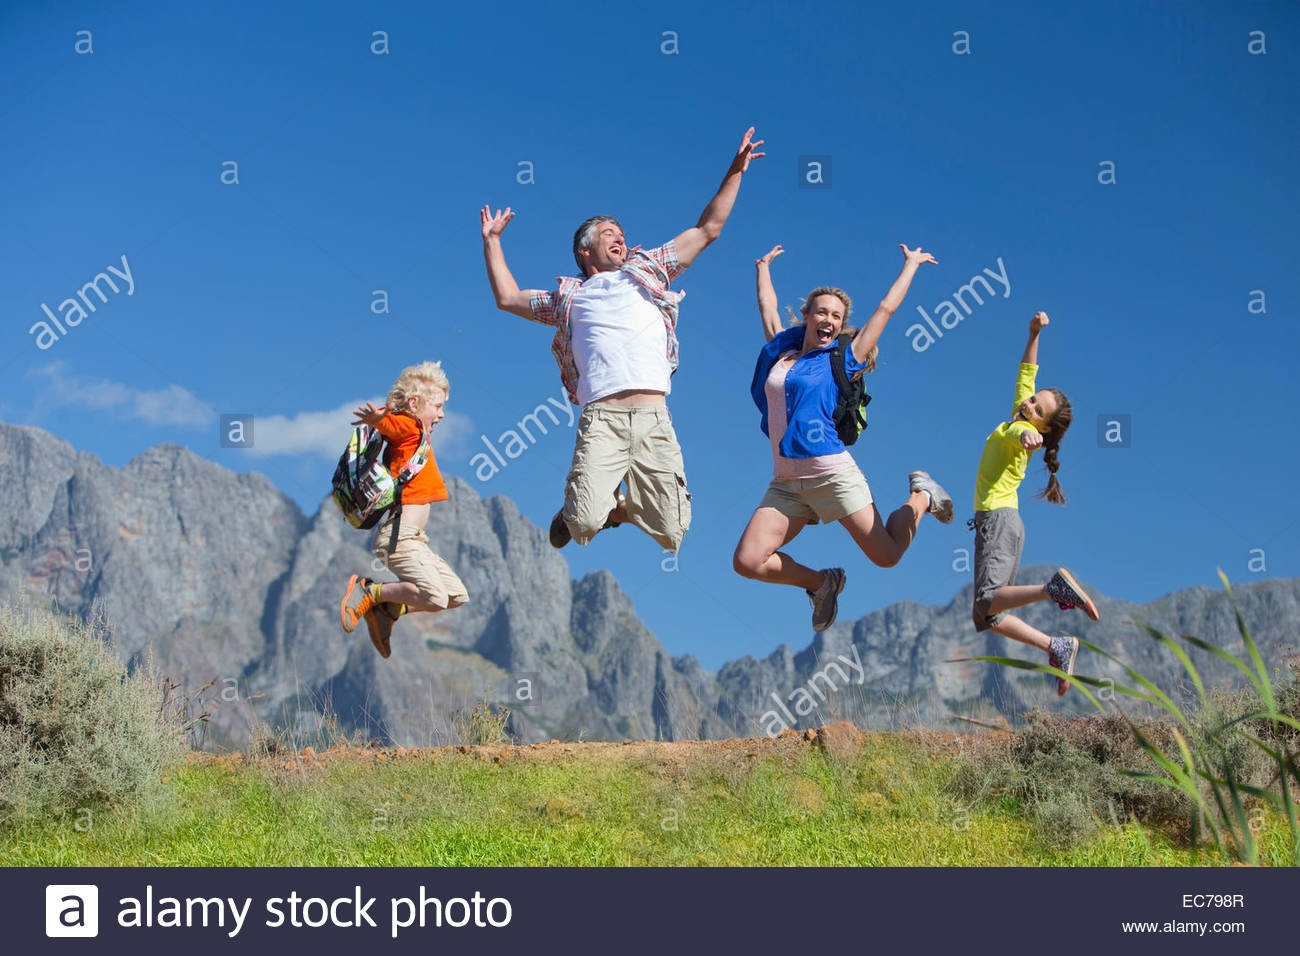 Family jumping in the air on a mountain hiking trail - Stock Image